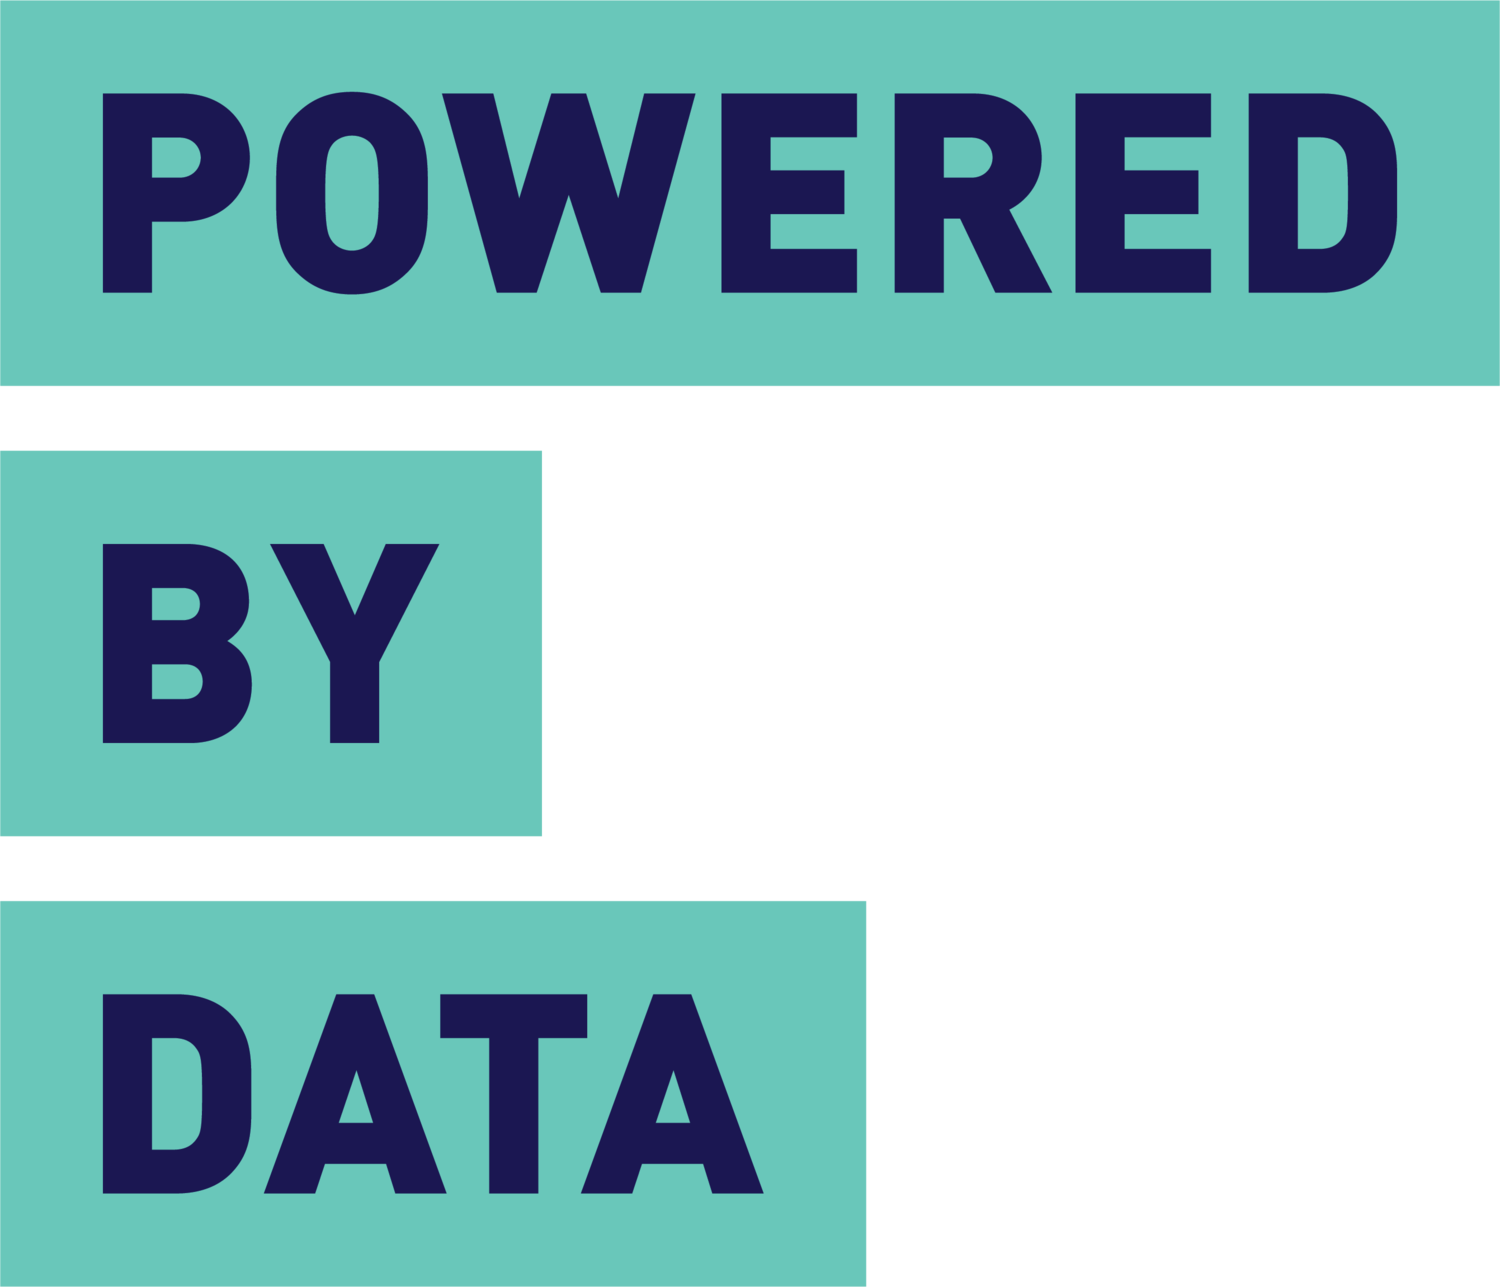 Powered by Data